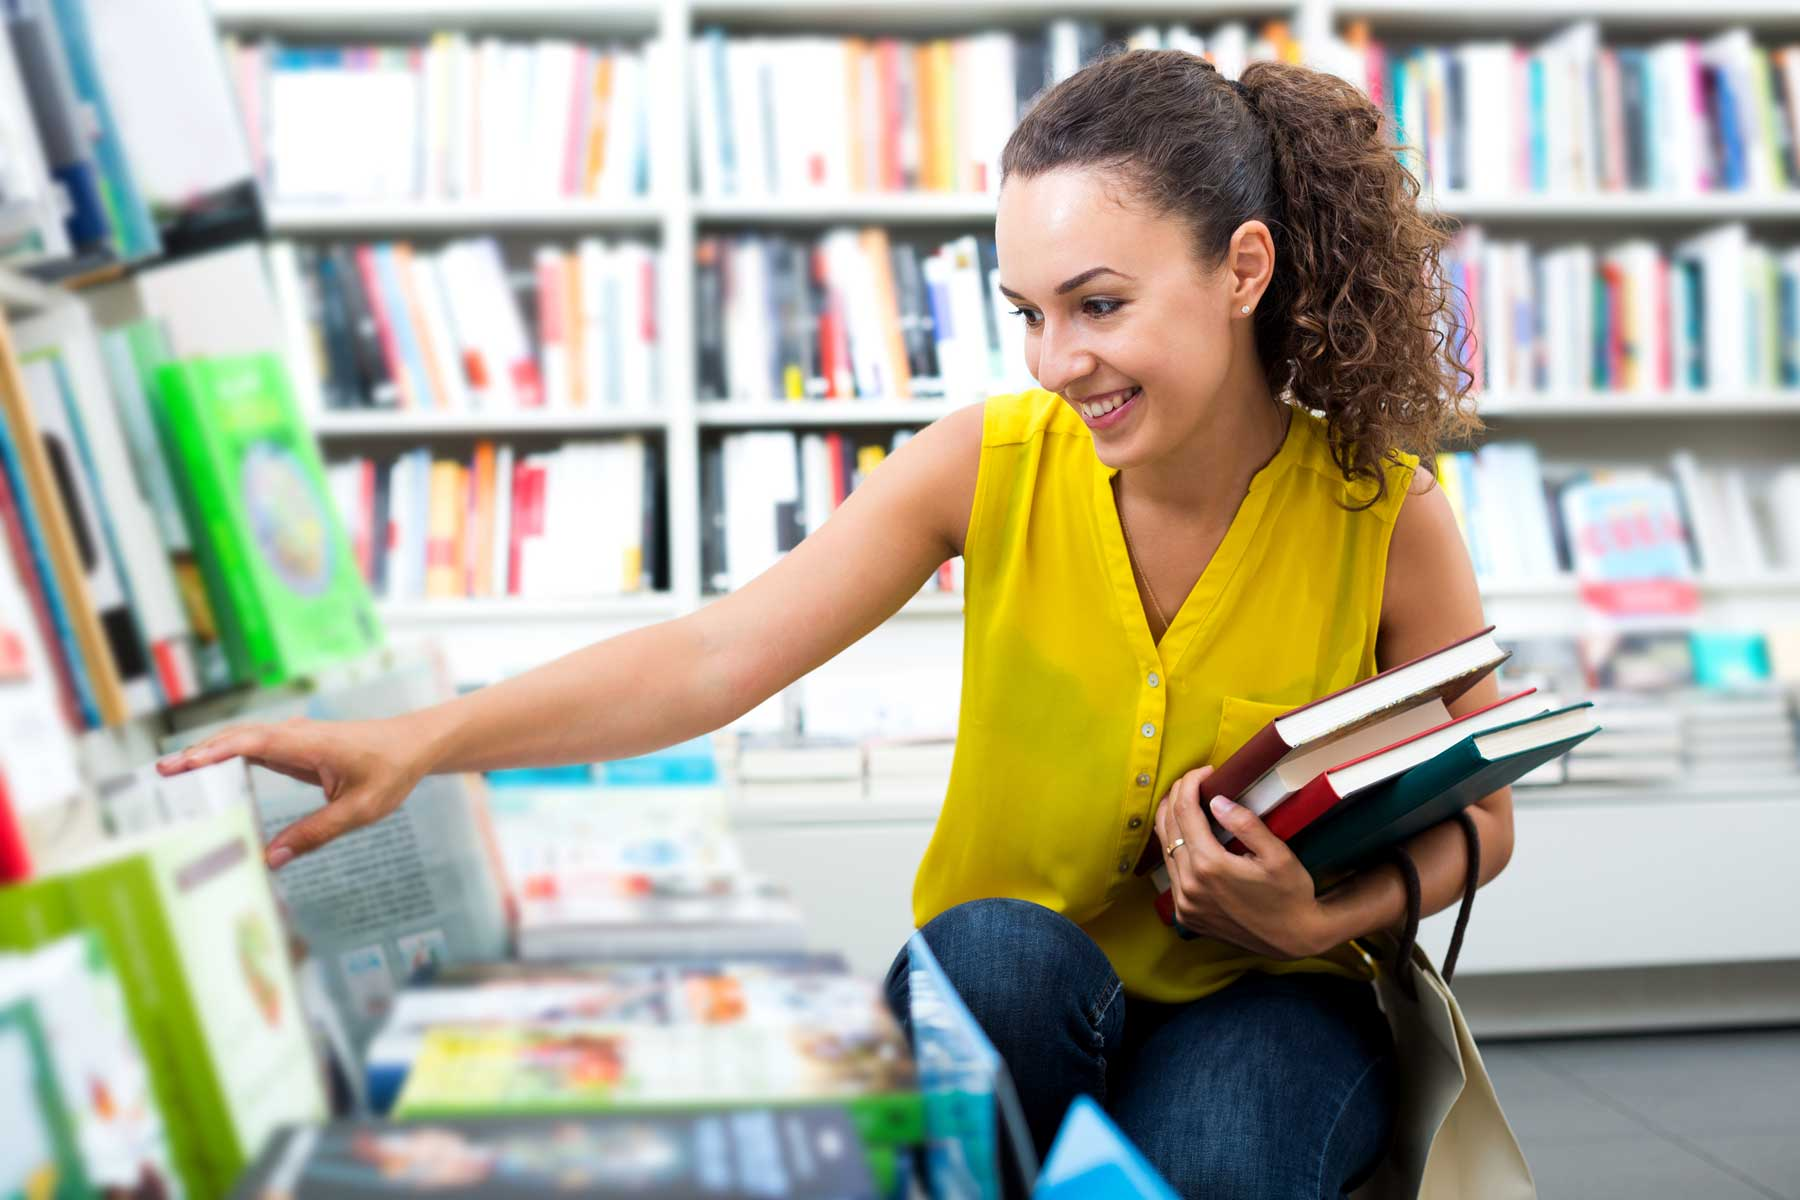 Female college student purchasing books at college bookstore